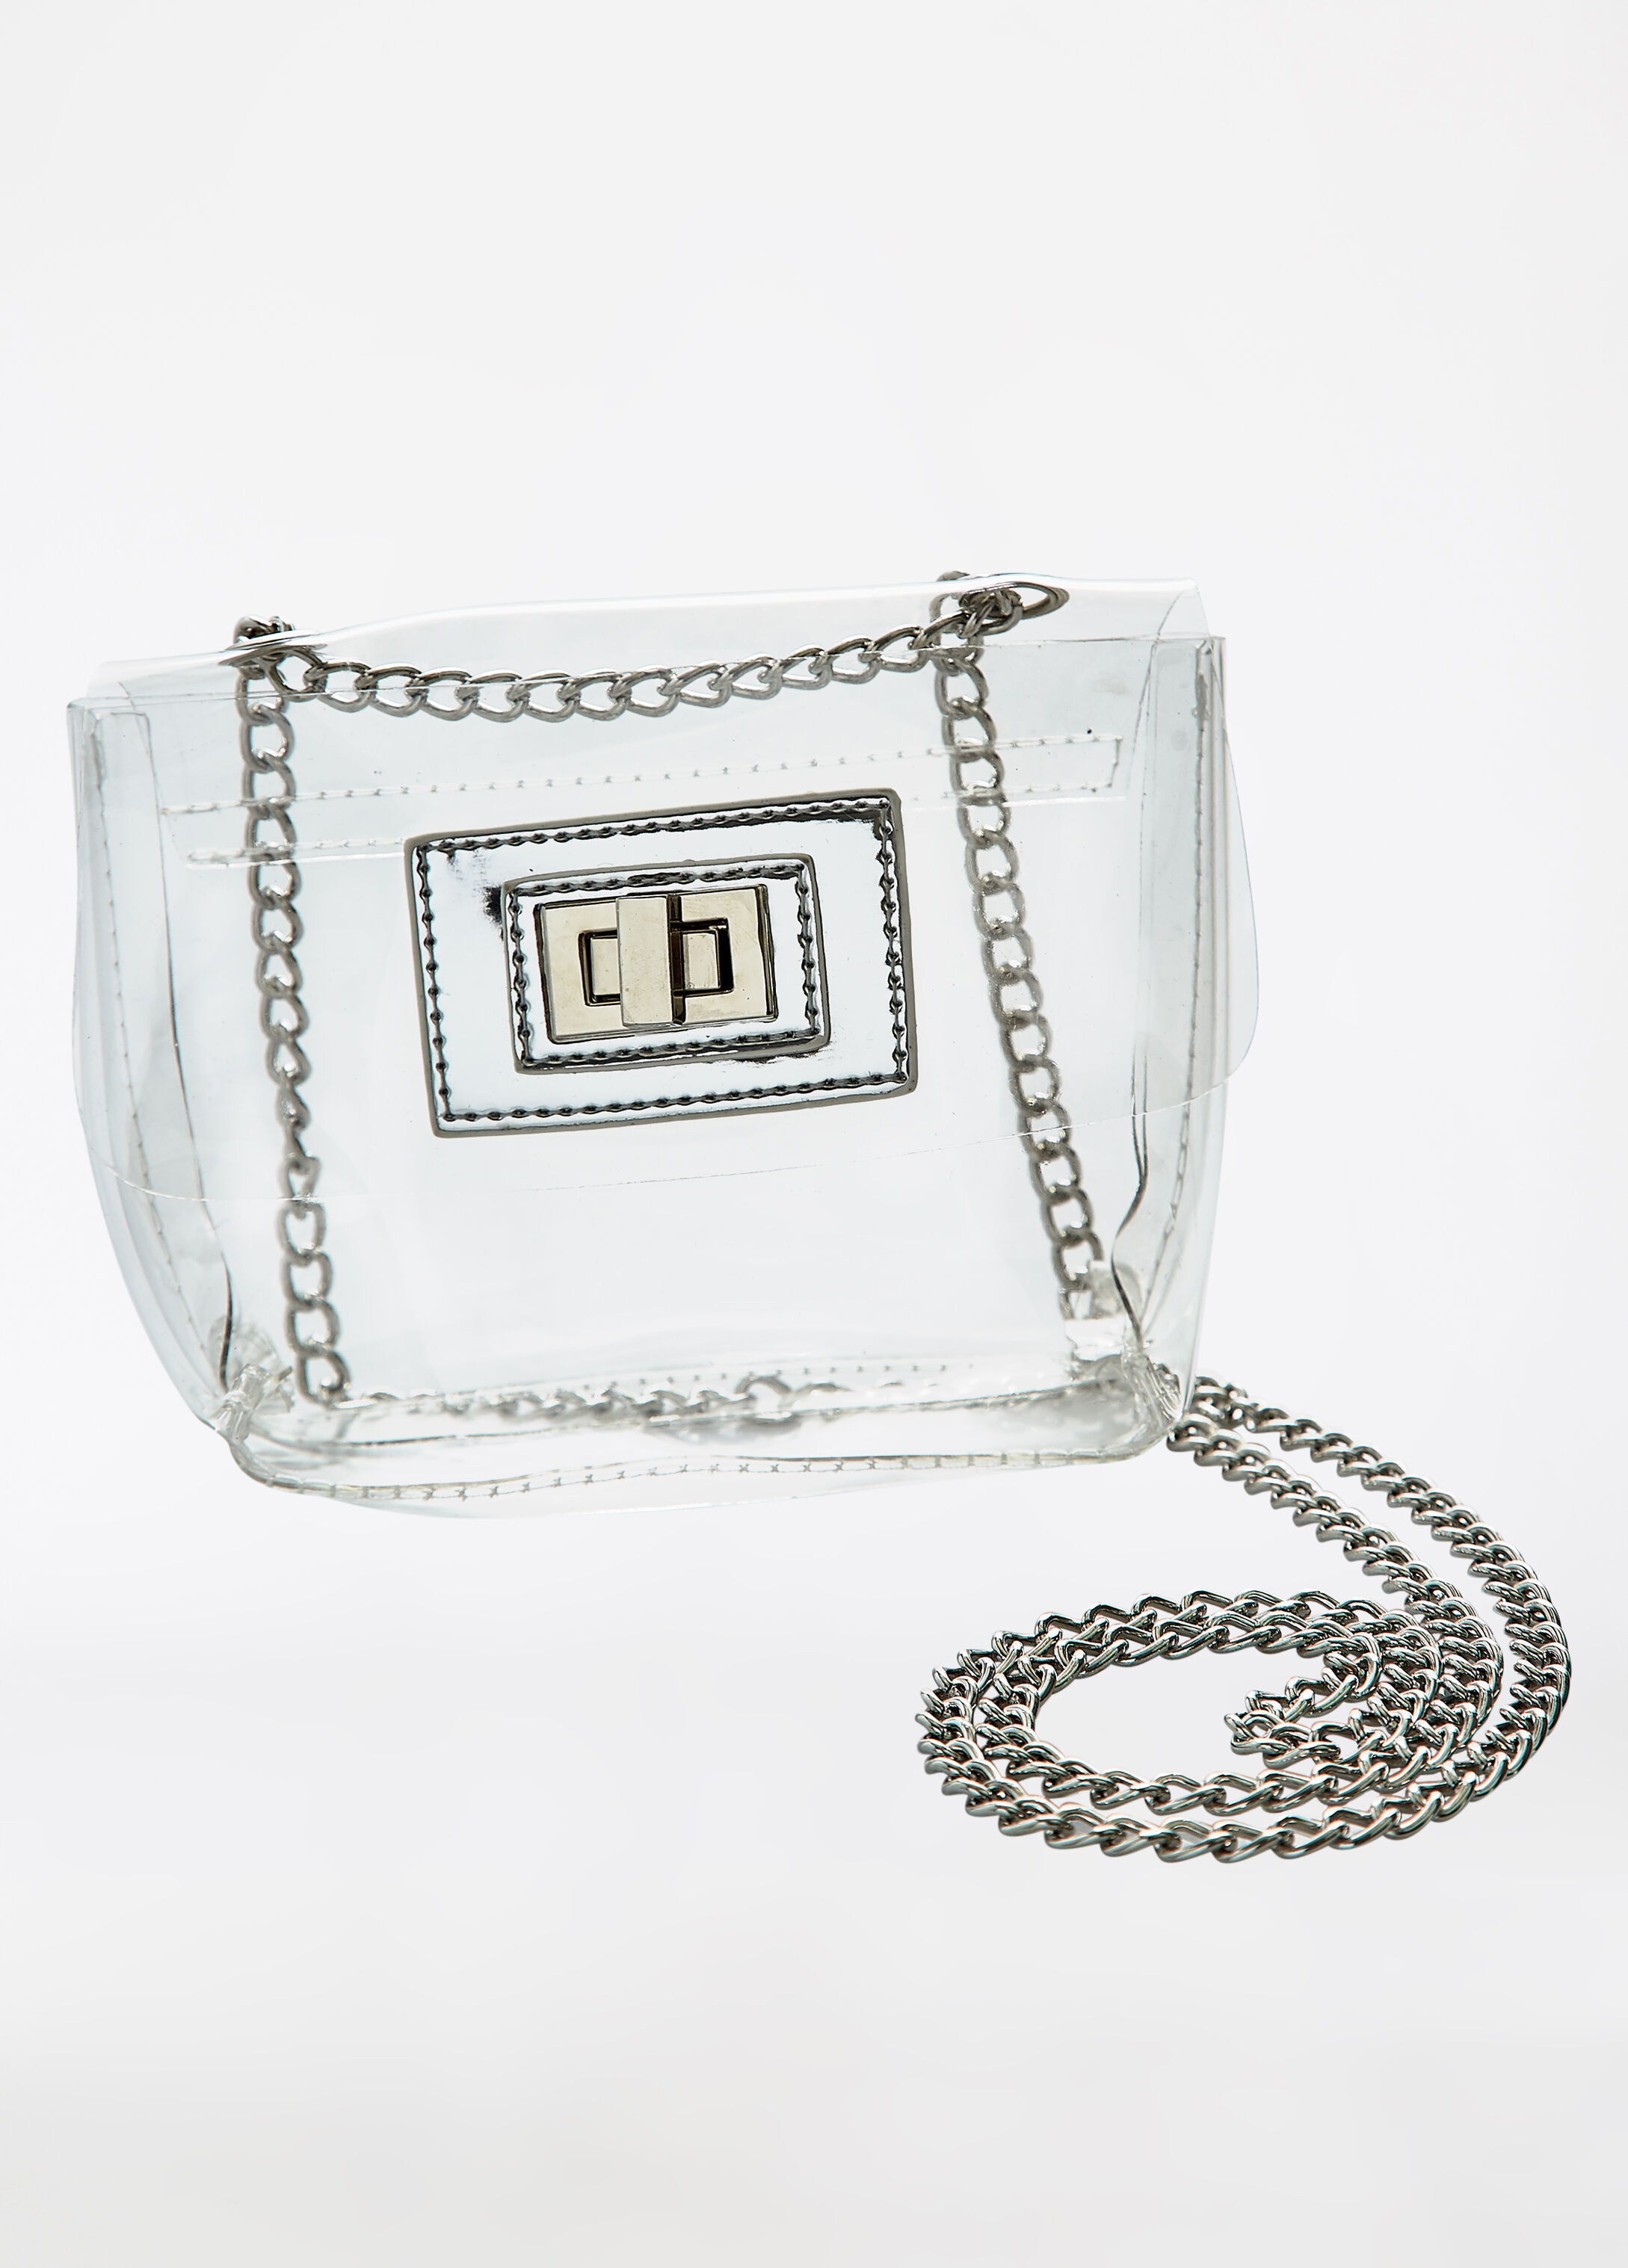 Clear Shoulder Bag with Metal Chain Link Strap